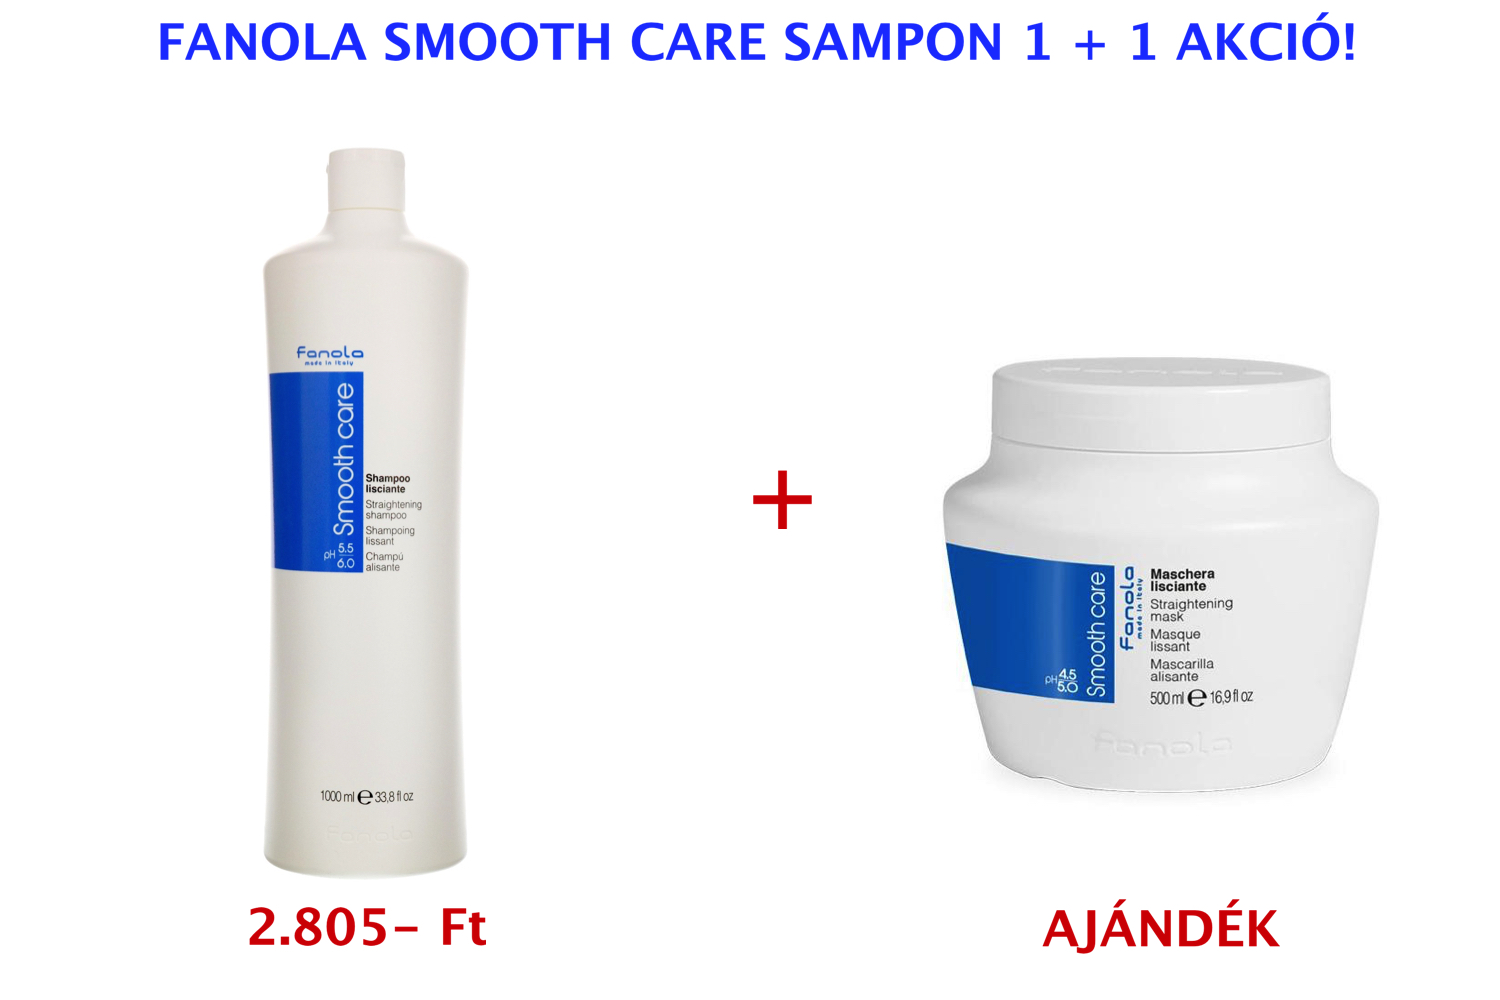 FANOLA Smooth Care Shampoo 1000 ml 1+1 AKCIÓ